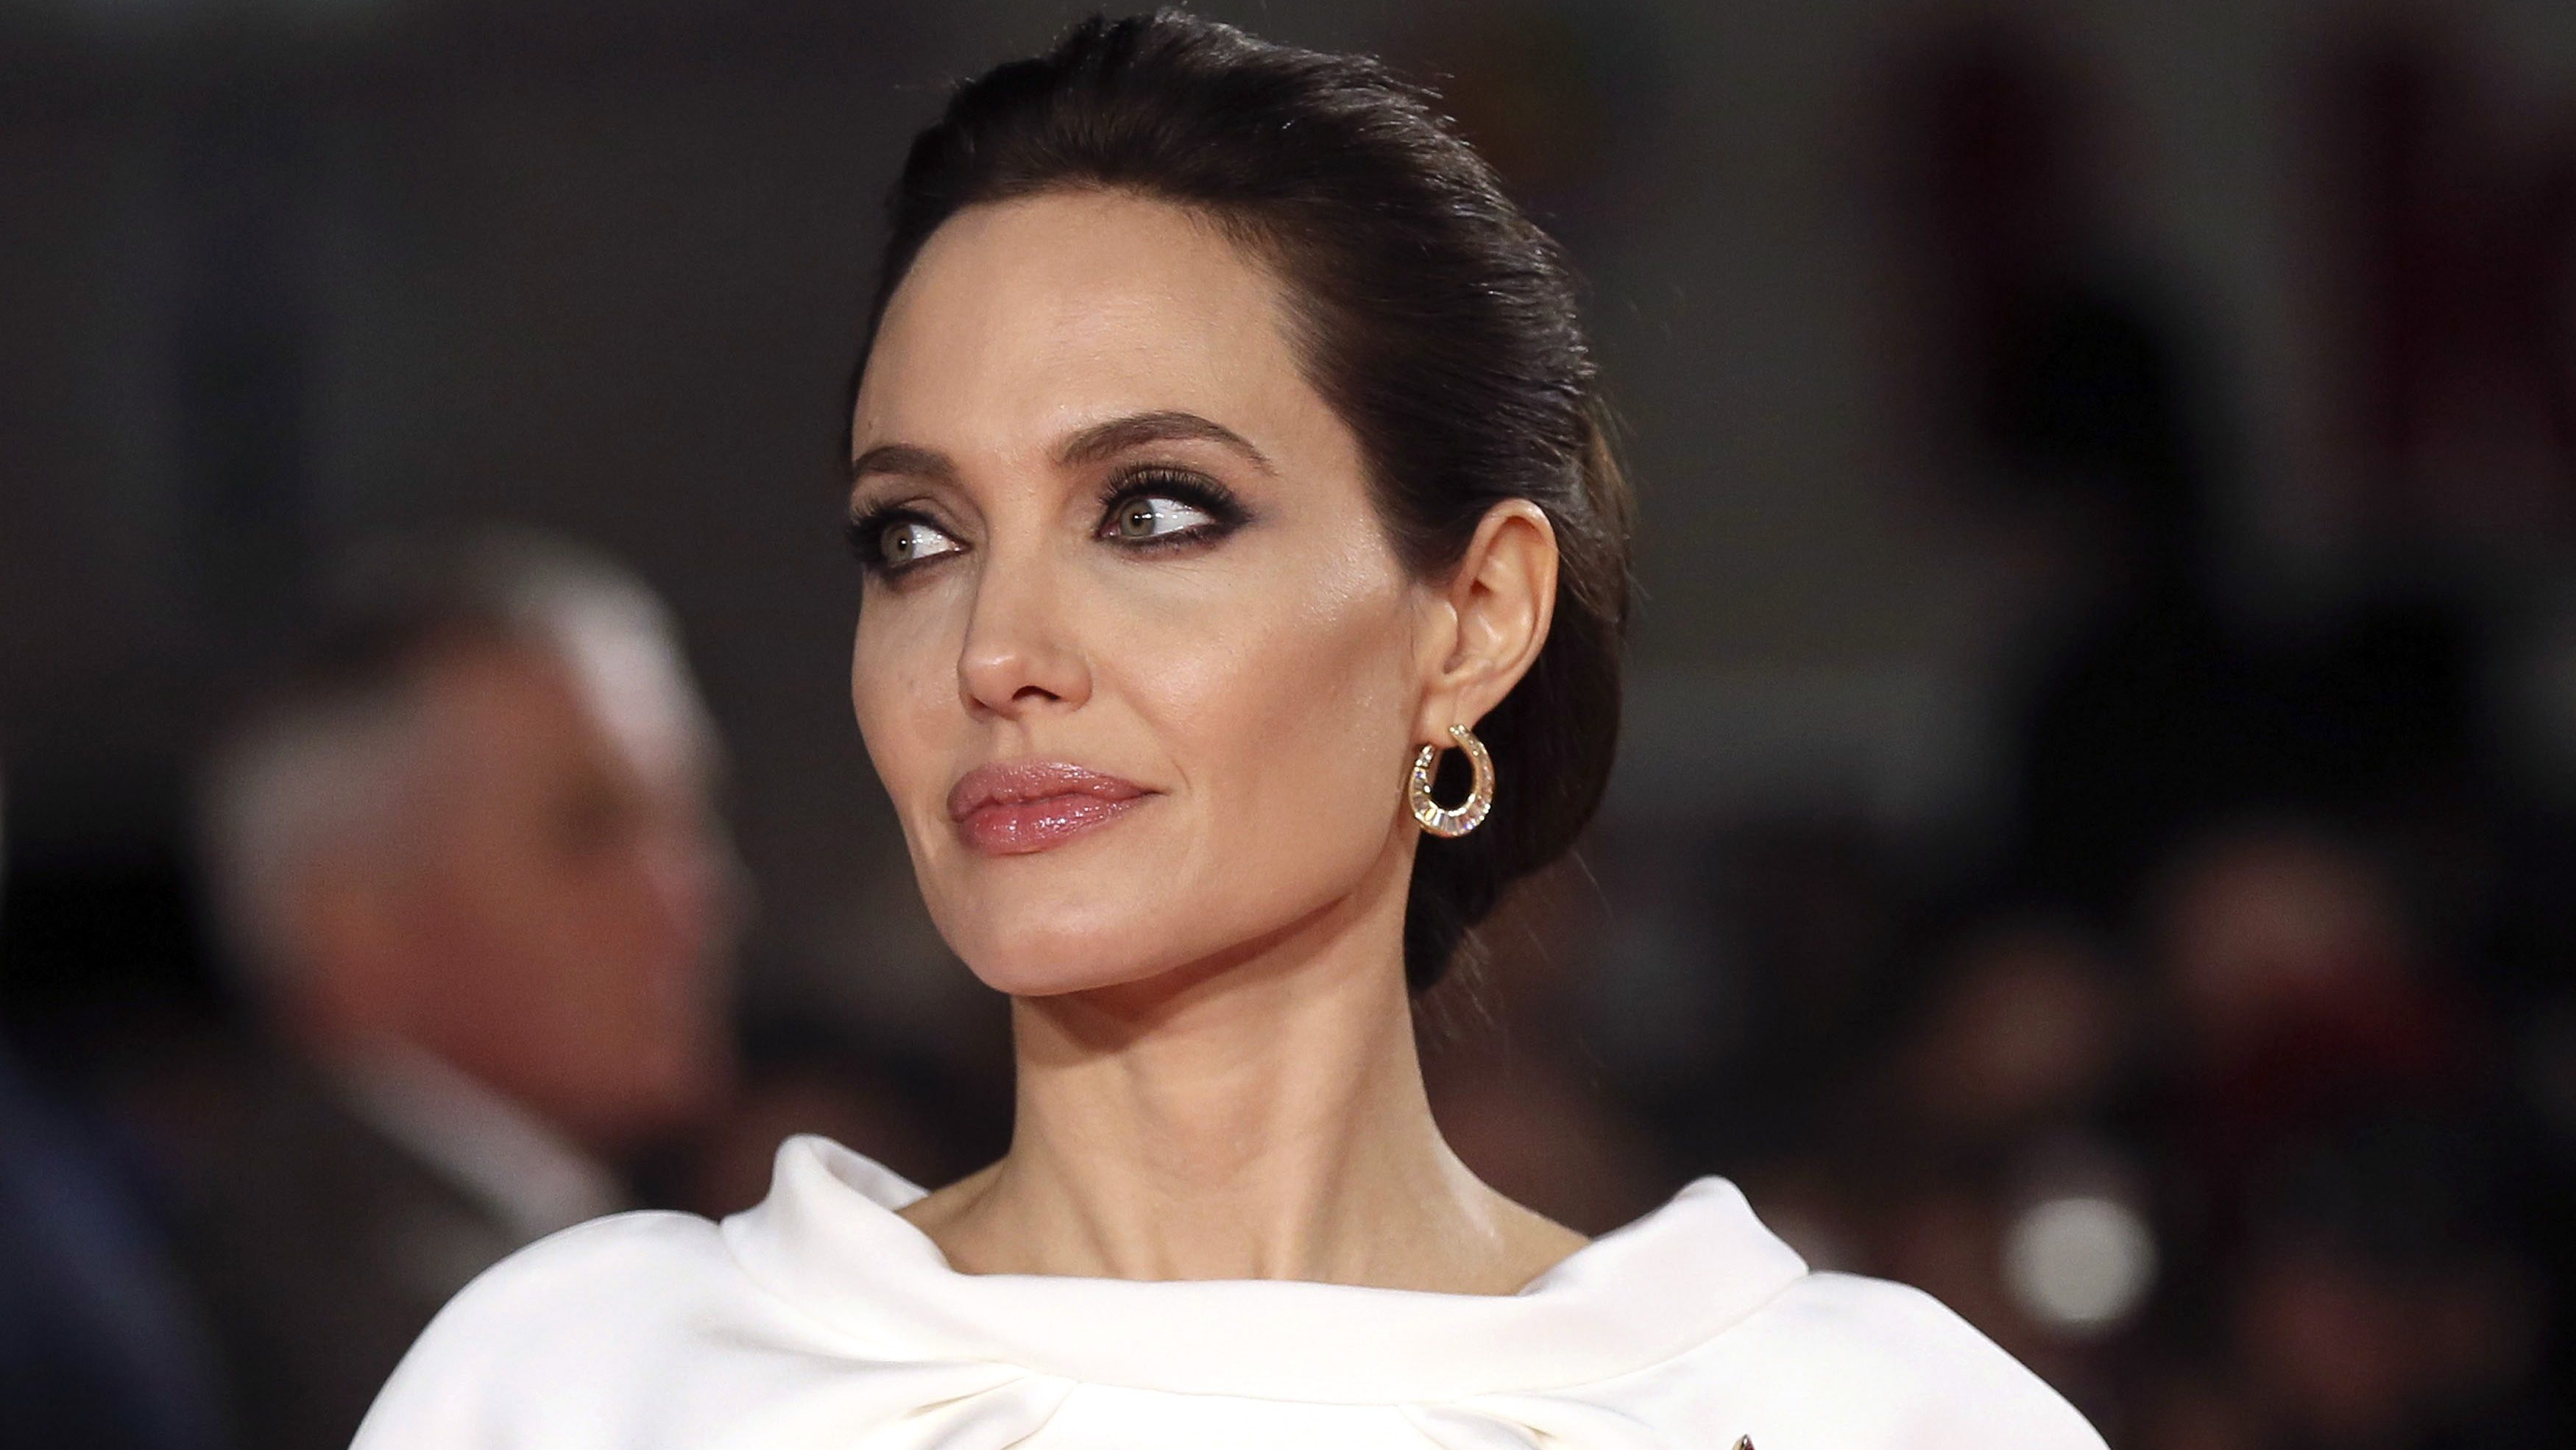 """Angelina Jolie poses for a photograph as she arrives for the UK premiere of """"Unbroken"""" in central London November 25, 2014.  REUTERS/Paul Hackett   (BRITAIN - Tags: ENTERTAINMENT) - RTR4FKKV"""